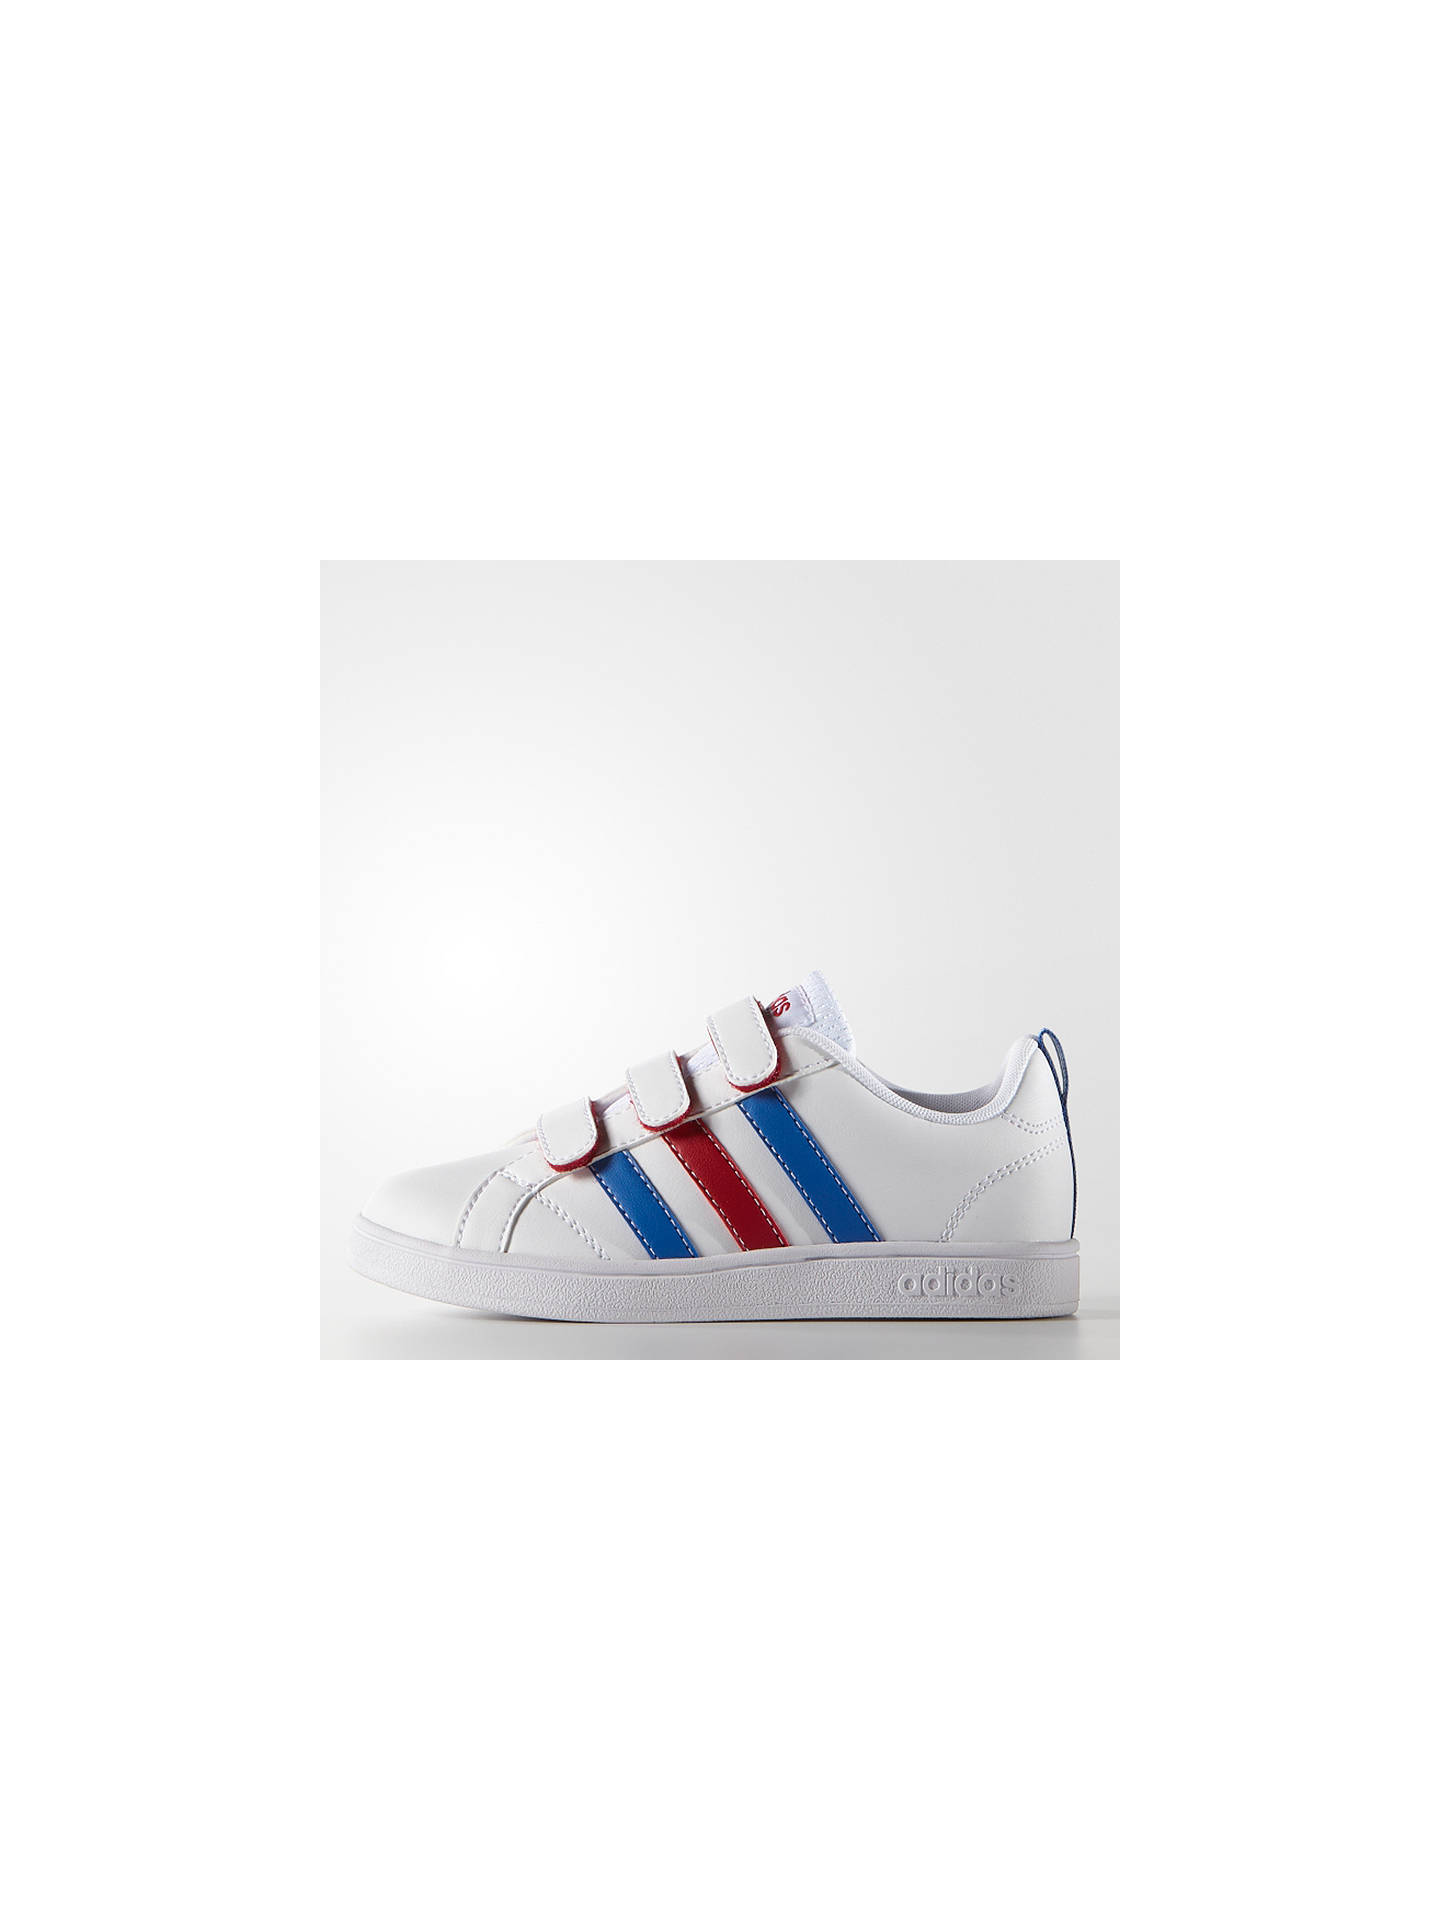 Buy Adidas Children's Advantage VS I Trainers, White/Red/Blue, 10 Jnr Online at johnlewis.com